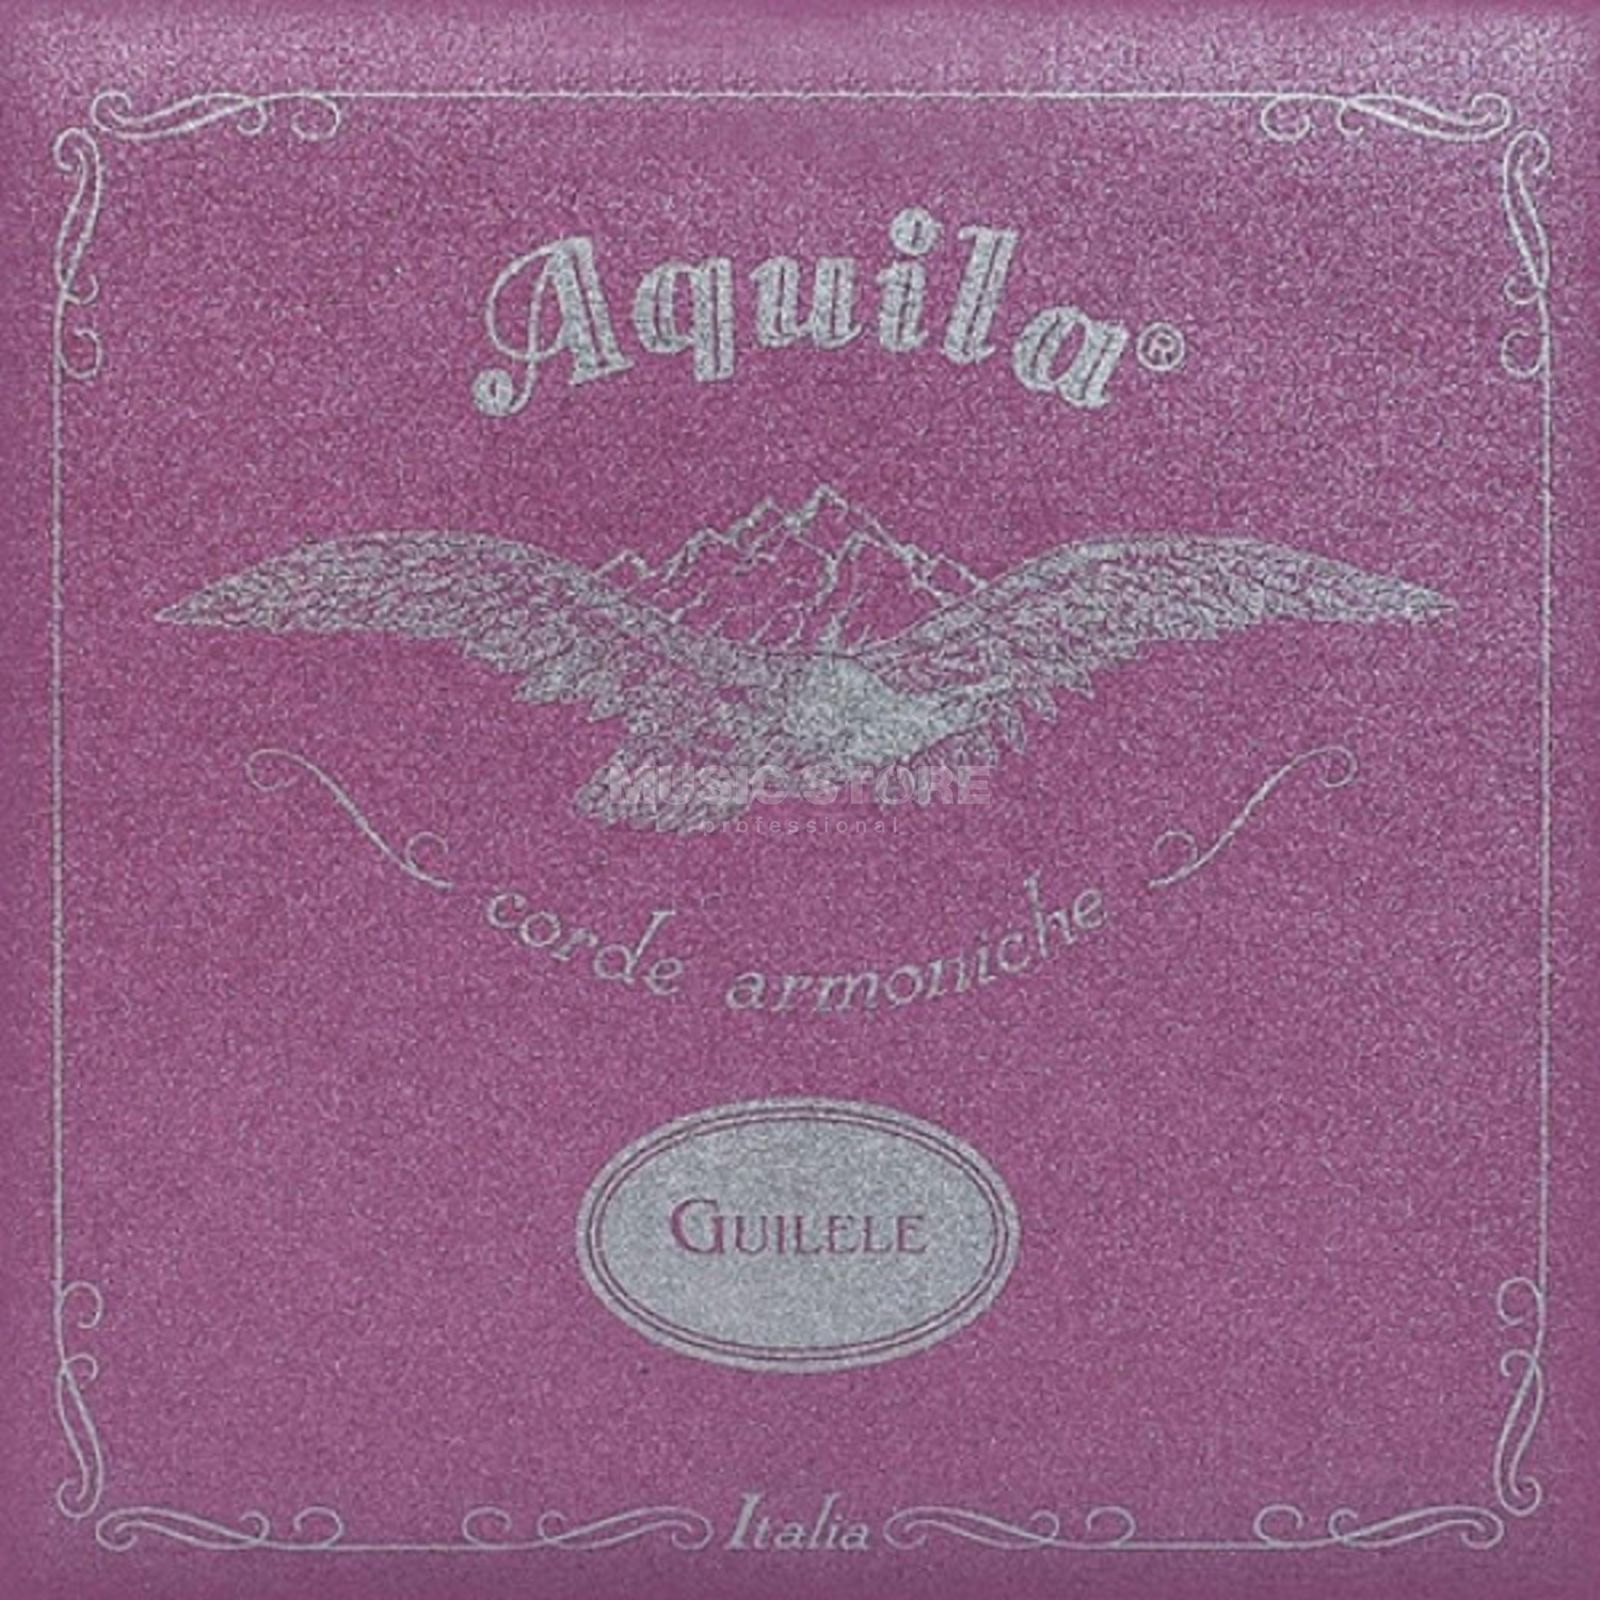 Aquila Corde Guilele/Guitalele Strings 96C Set Product Image